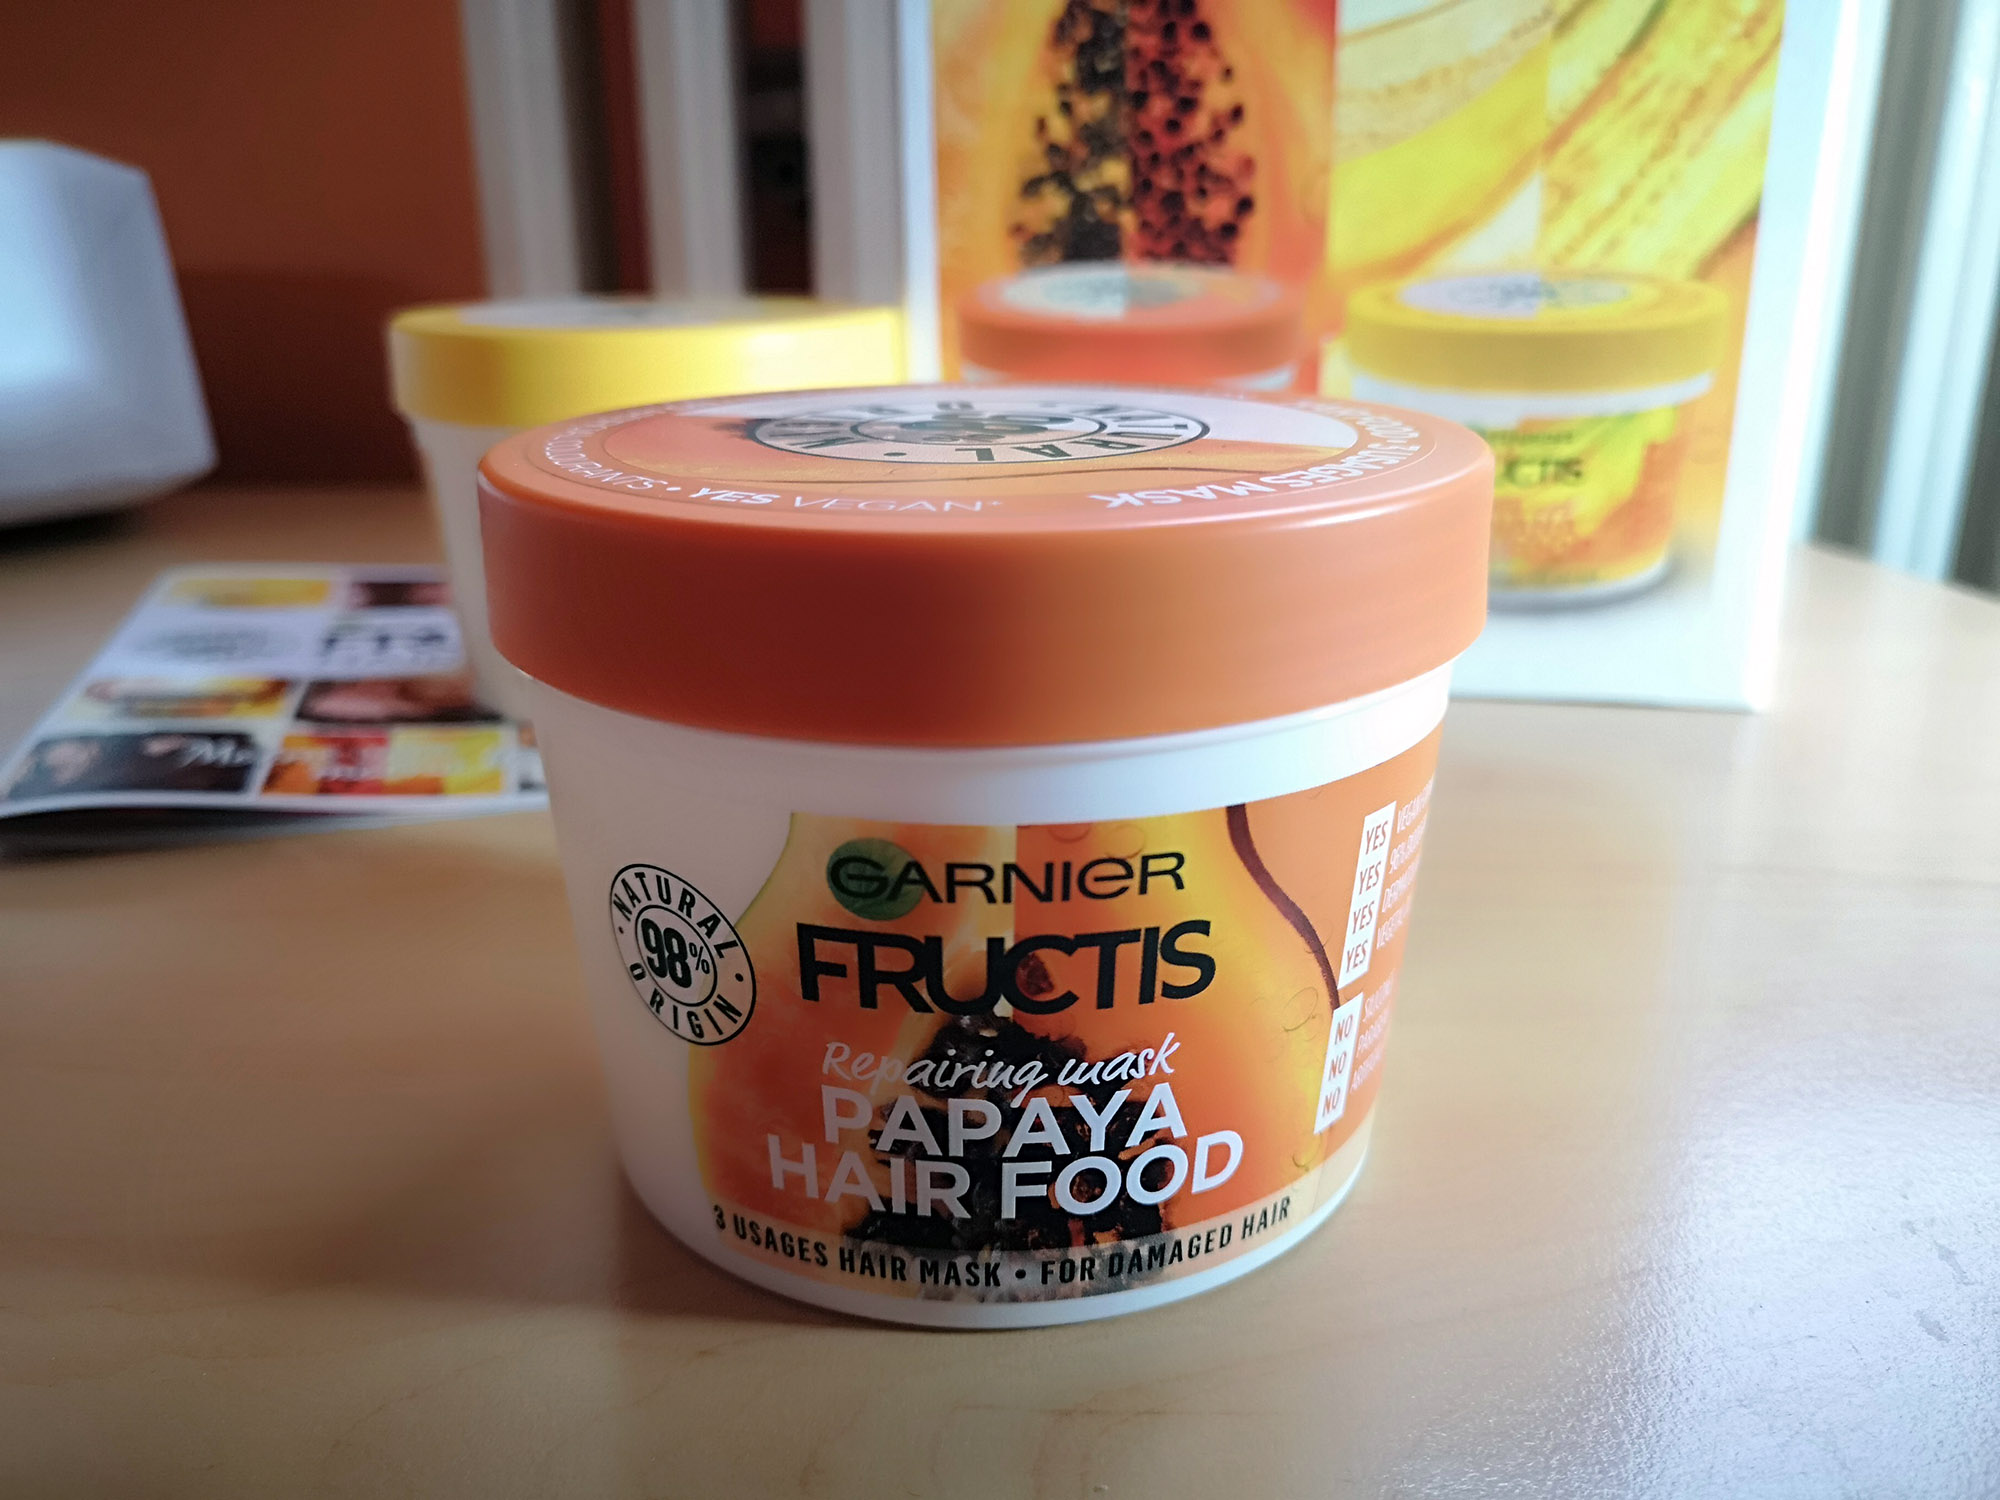 Garnier Fructis Hair Food Papaja; Foto: kovalska.rs